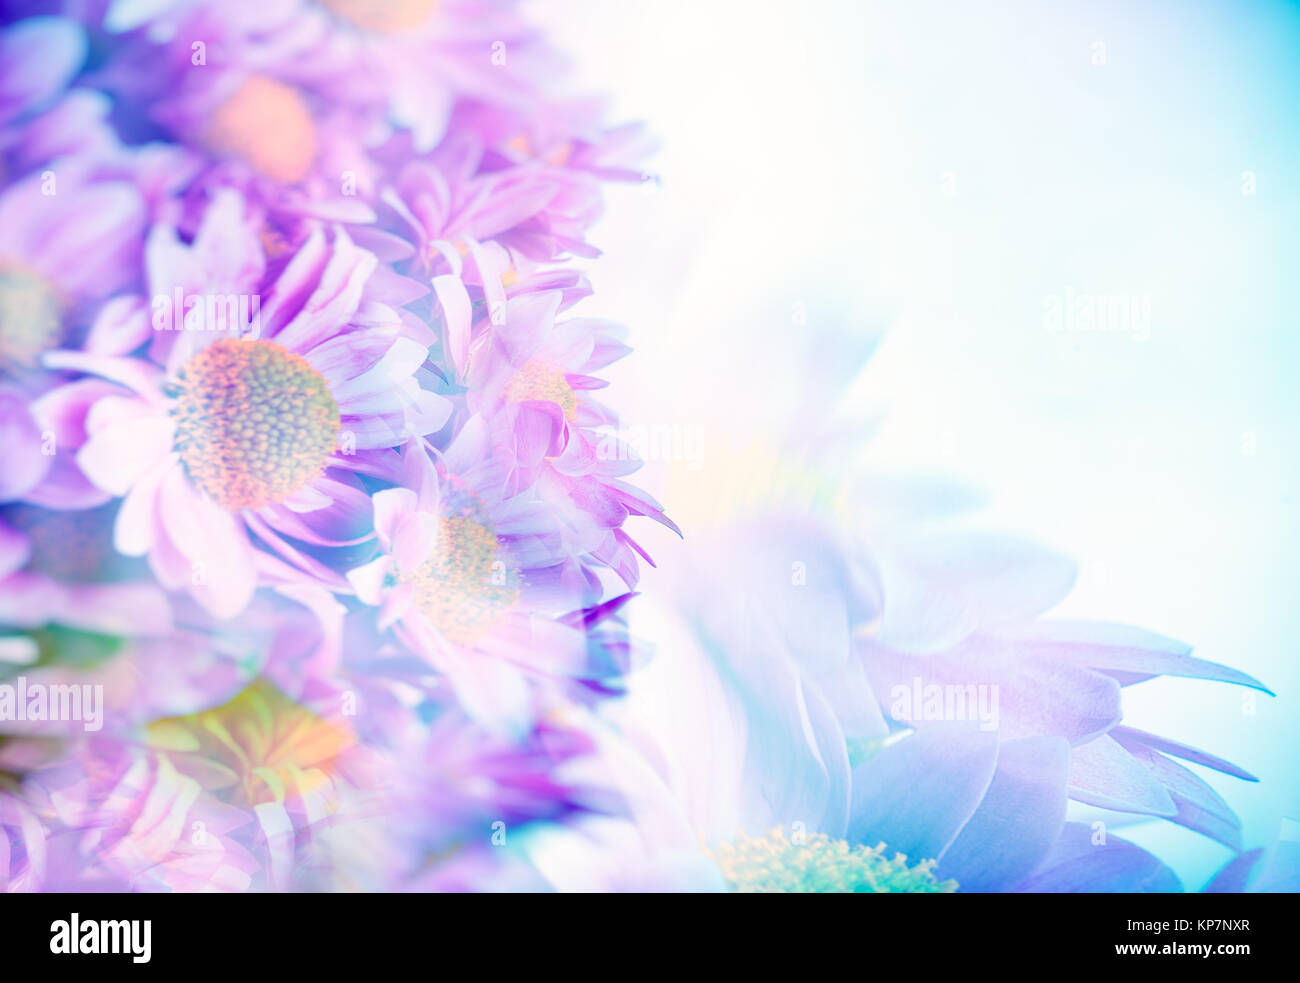 Border Of A Beautiful Pink Blue Daisy Flowers Gentle Flower Bouquet Fine Art Background Selective Focus Tender Greeting Card For Wedding Day